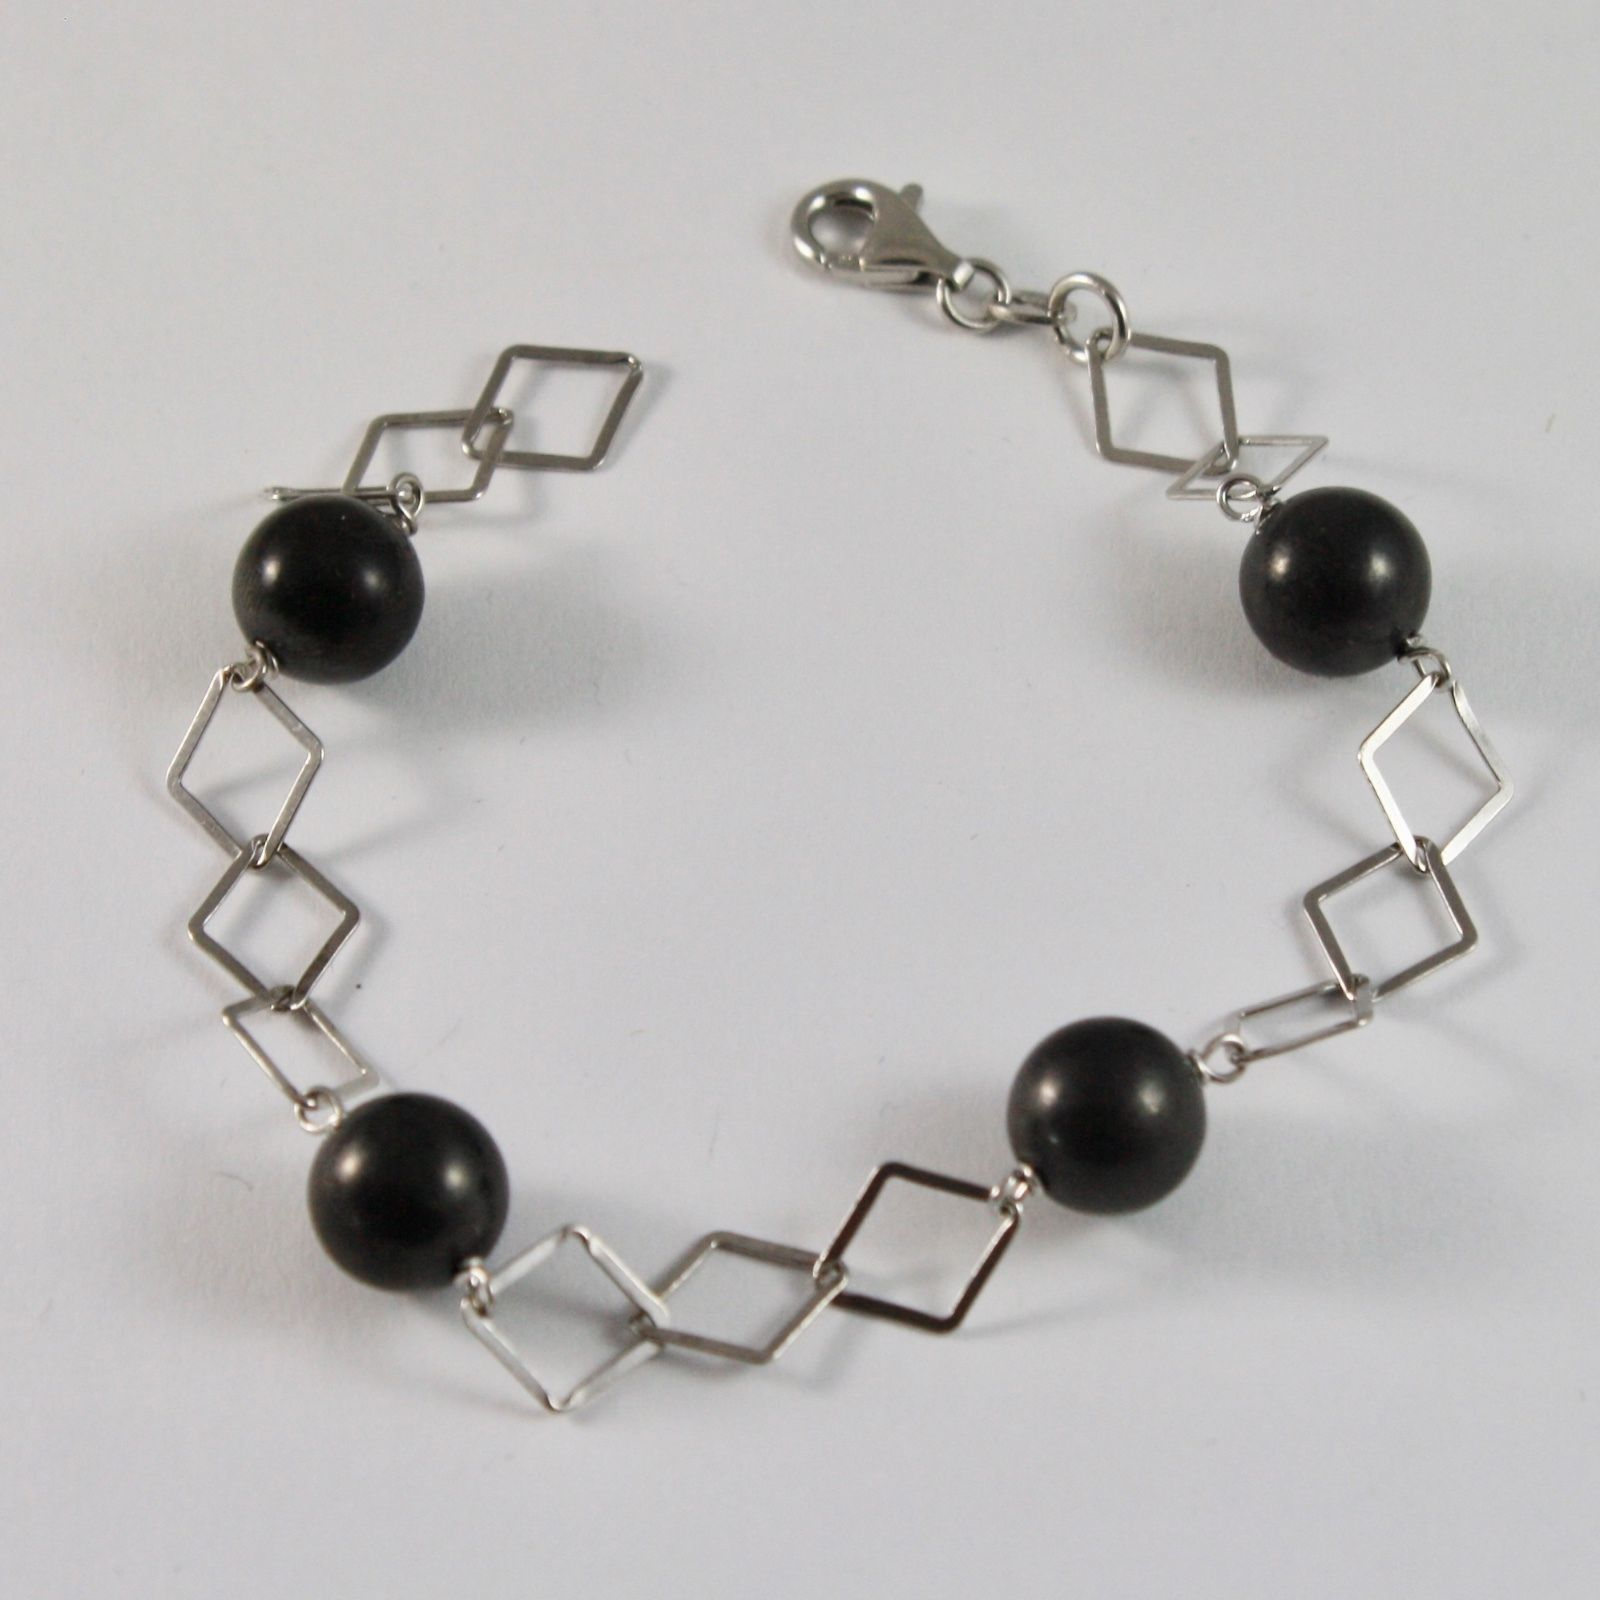 SILVER 925 BRACELET WITH SHUNGITE BLACK ROUND DIAMETER 10 MM LONG 20 CM